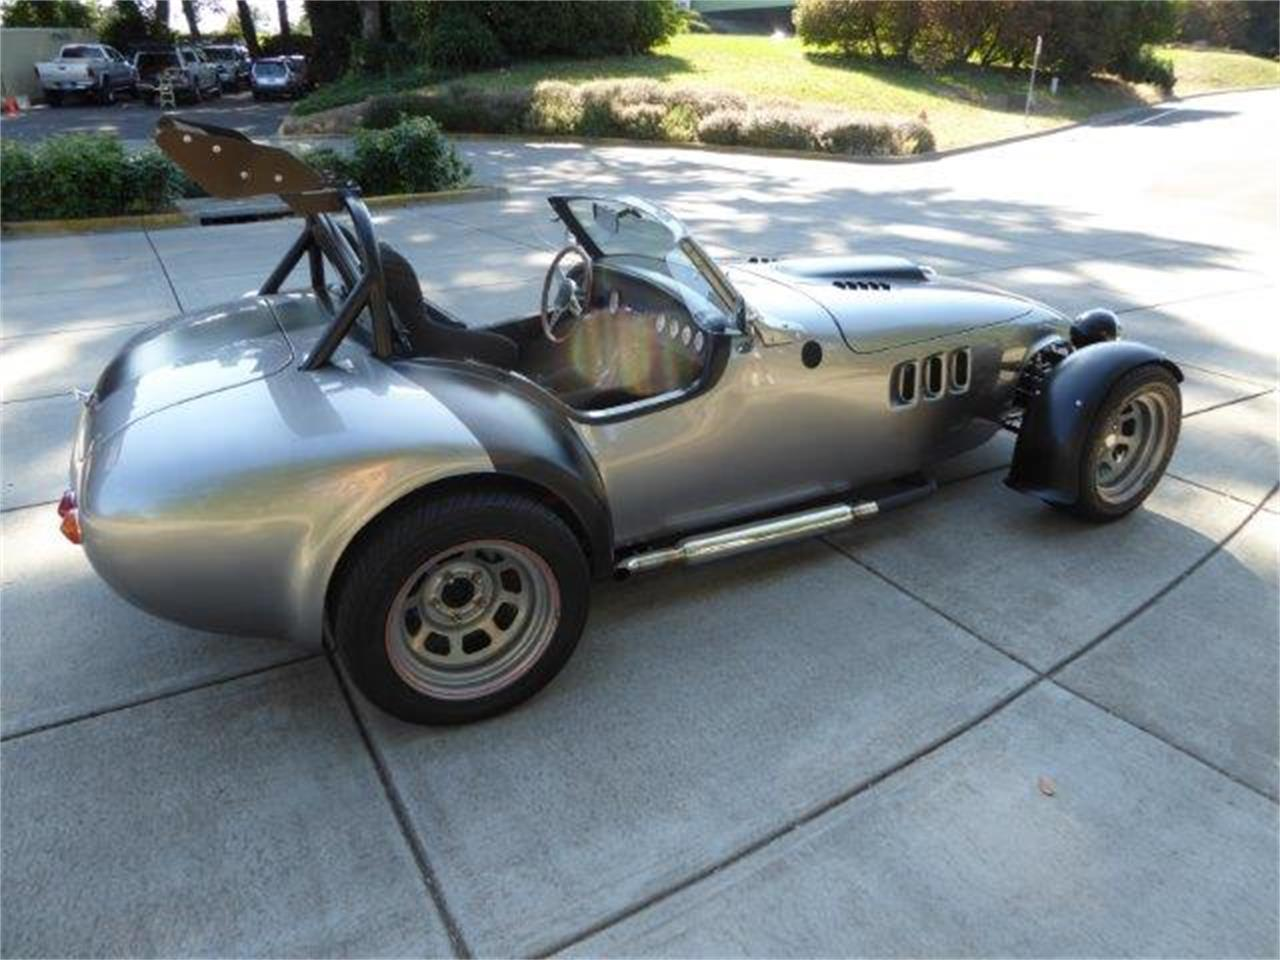 Lotus 7 Replica For Sale >> Ebay and Craigslist ads - Lots of Sevens for sale